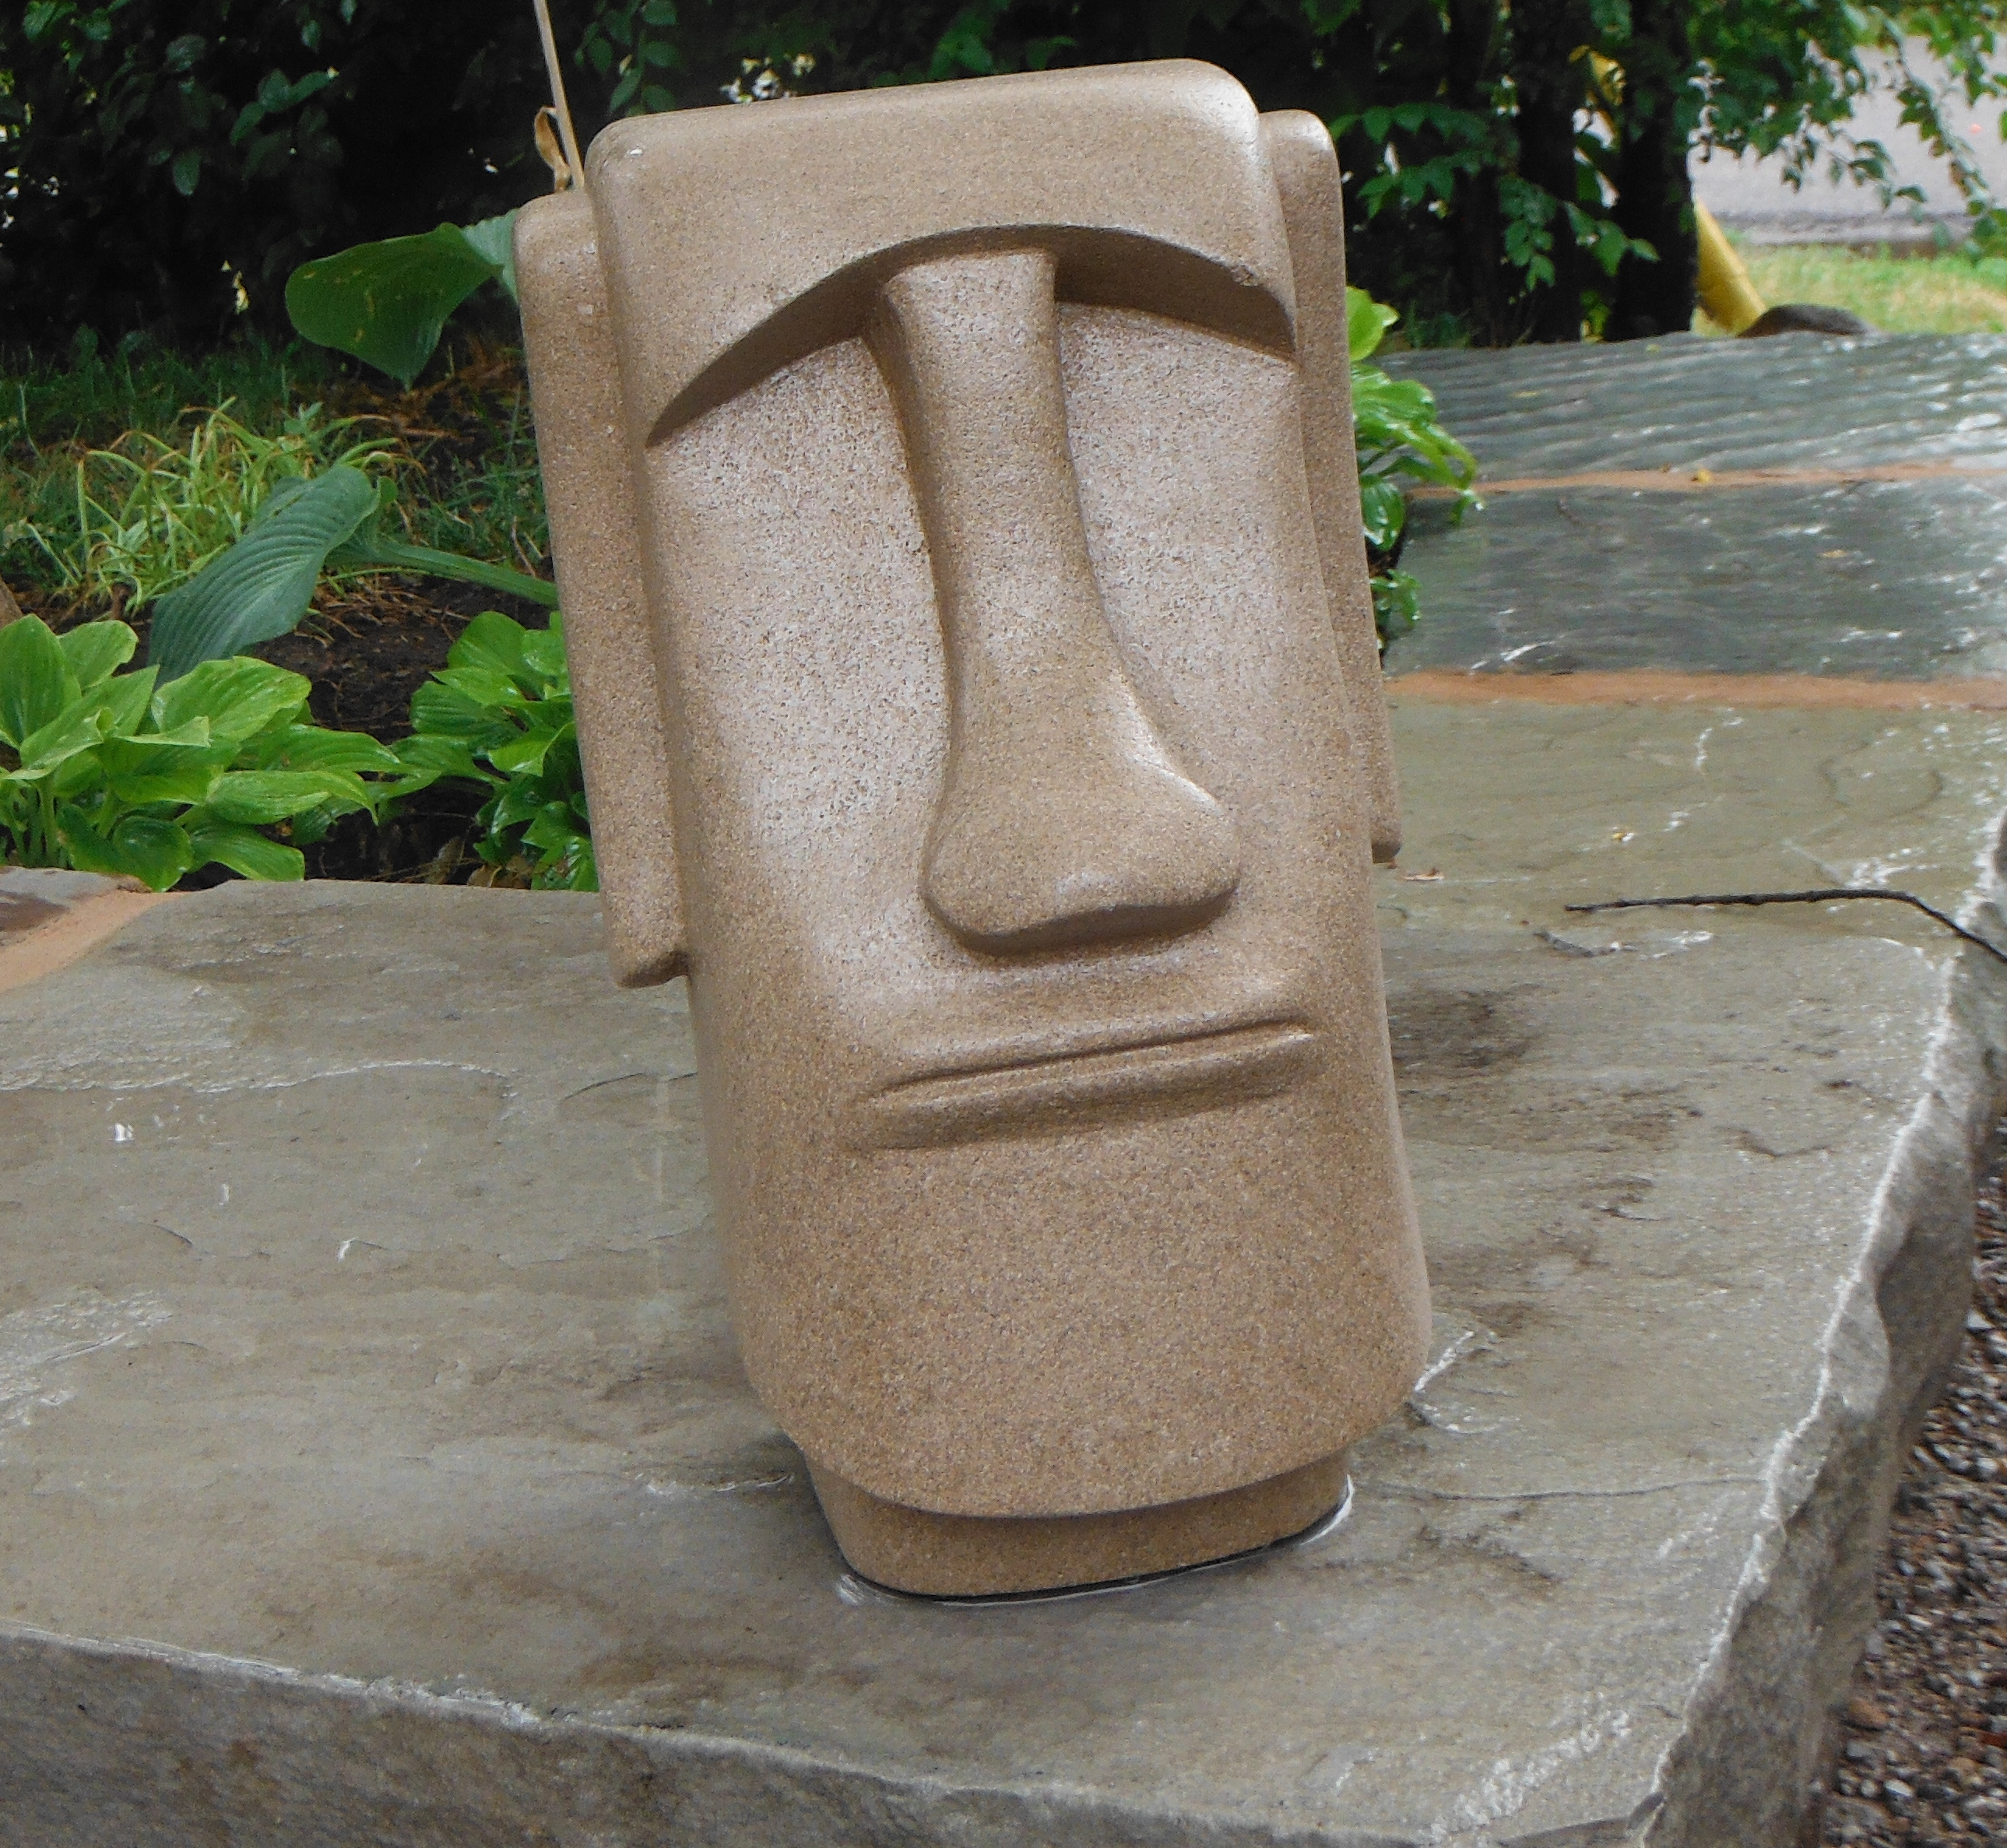 Easter Island head replica